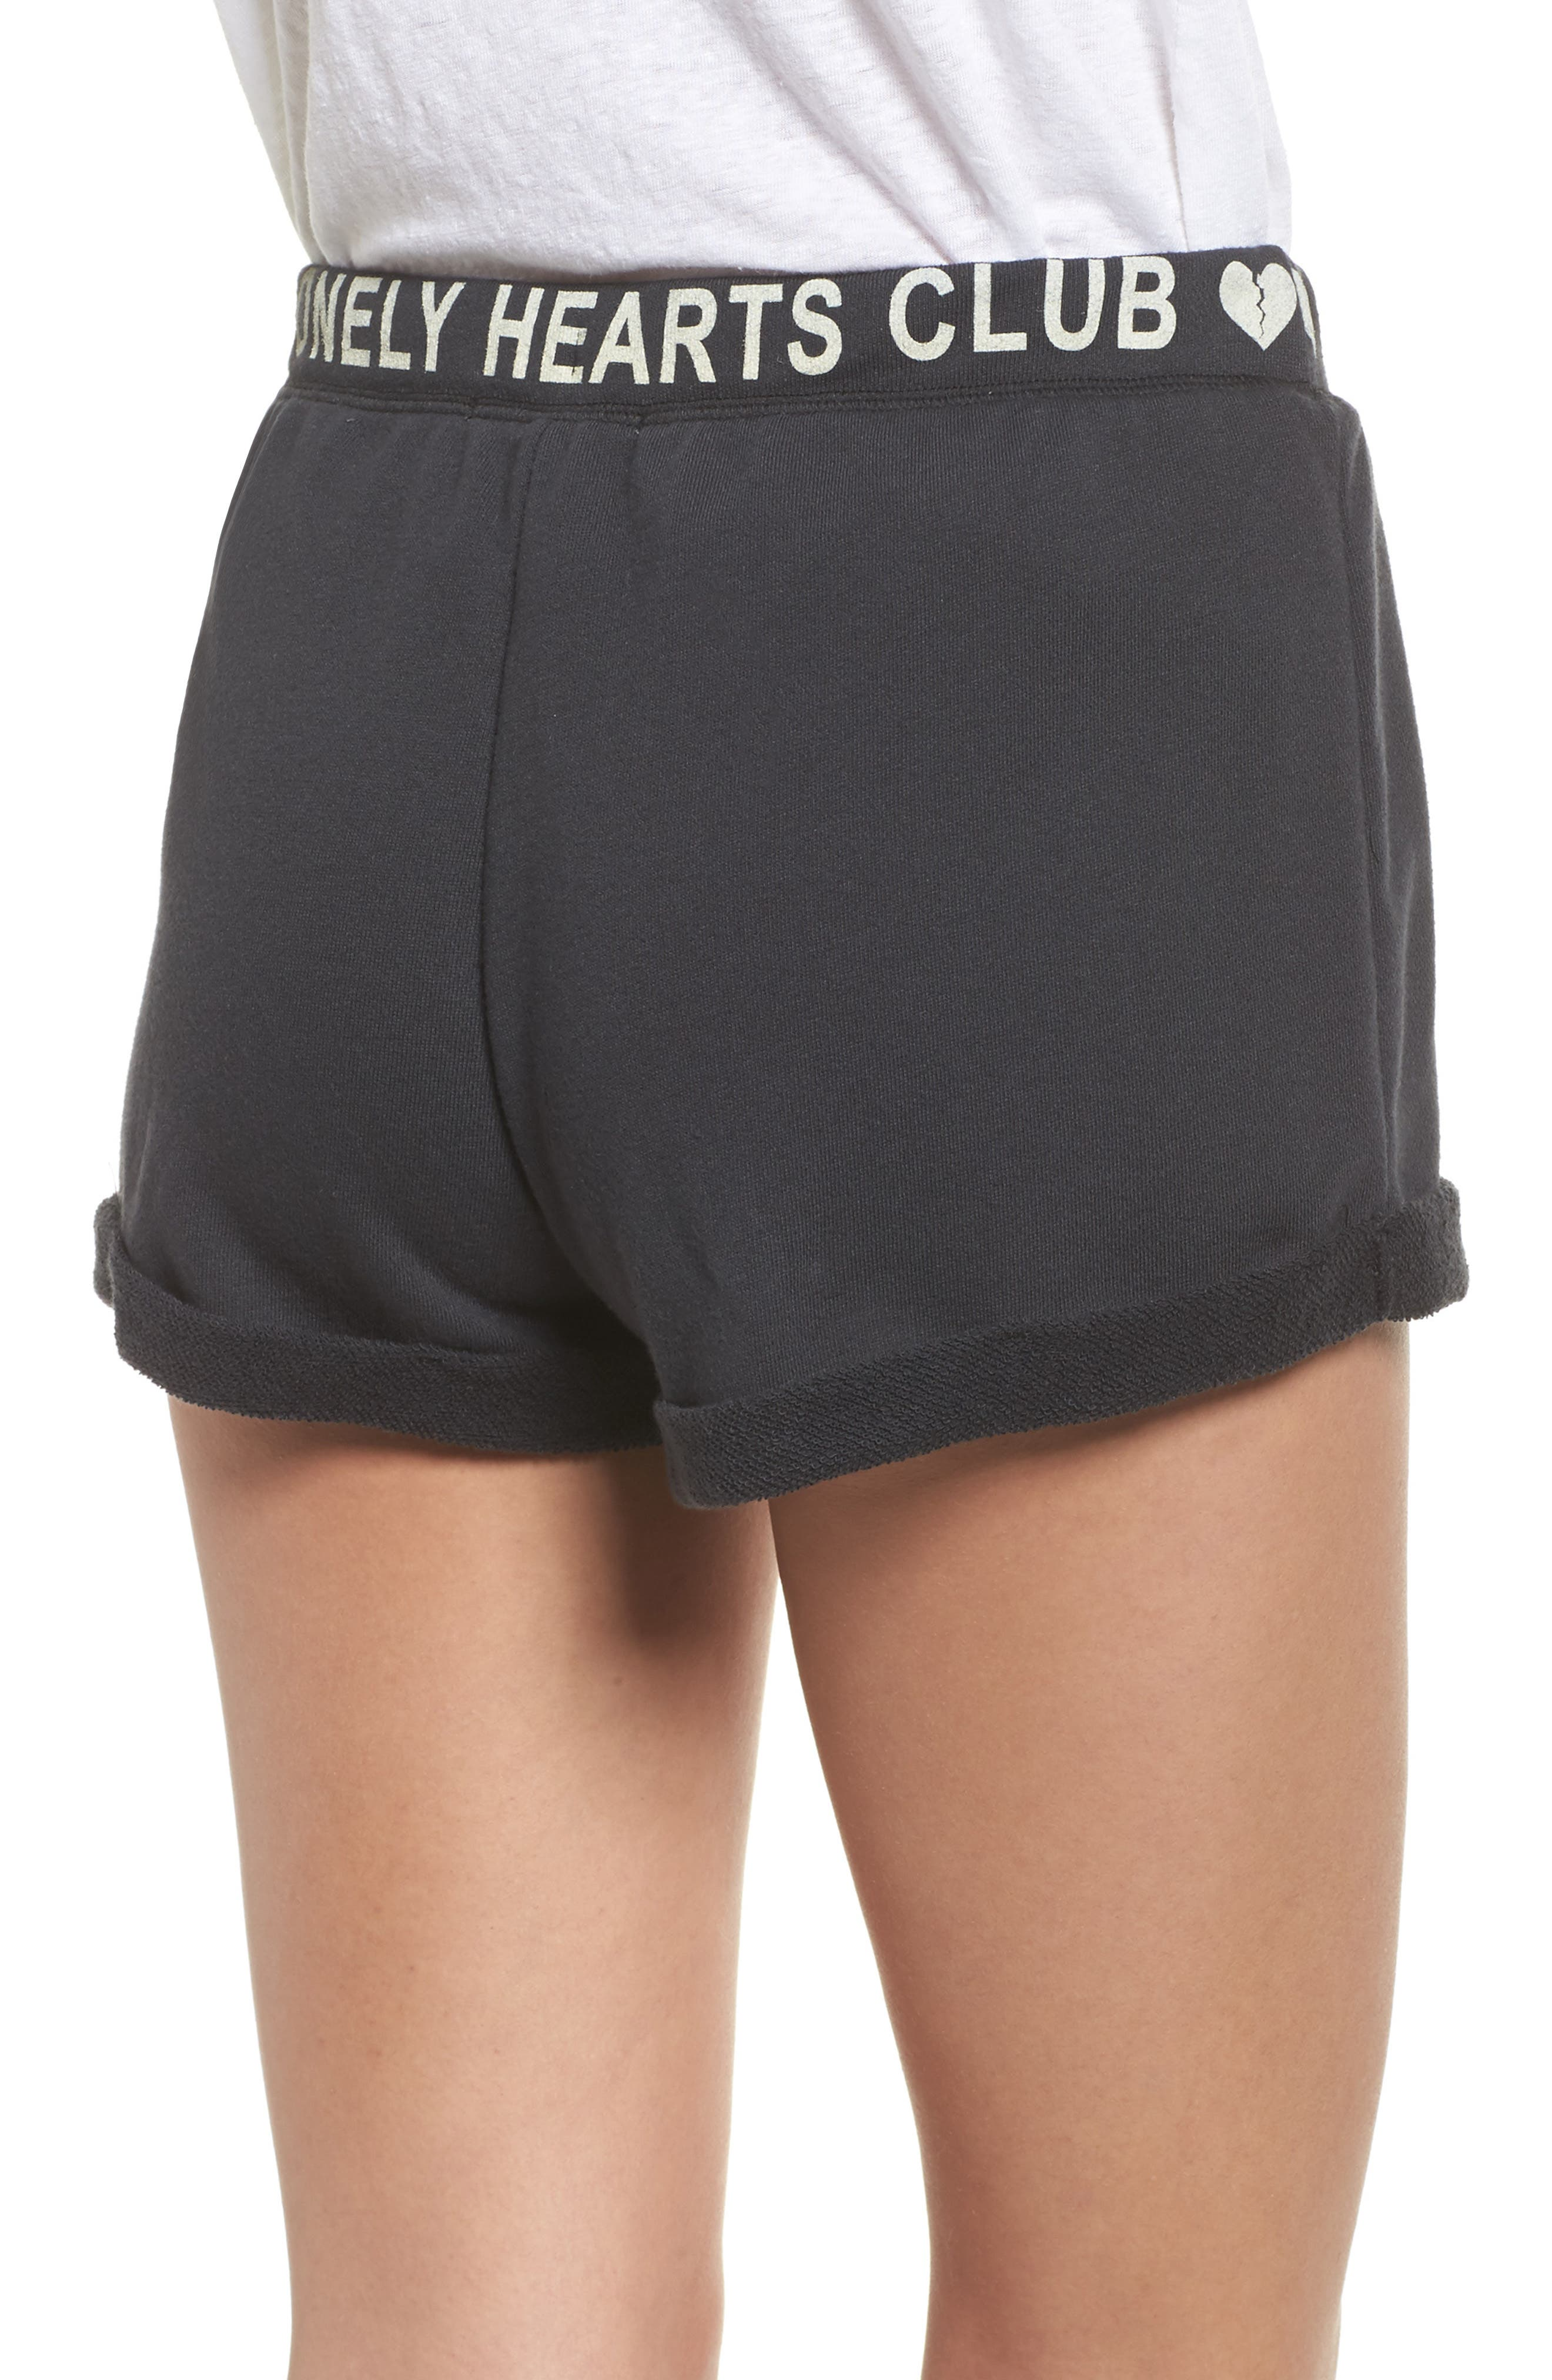 Lonely Hearts Club Lounge Shorts,                             Alternate thumbnail 2, color,